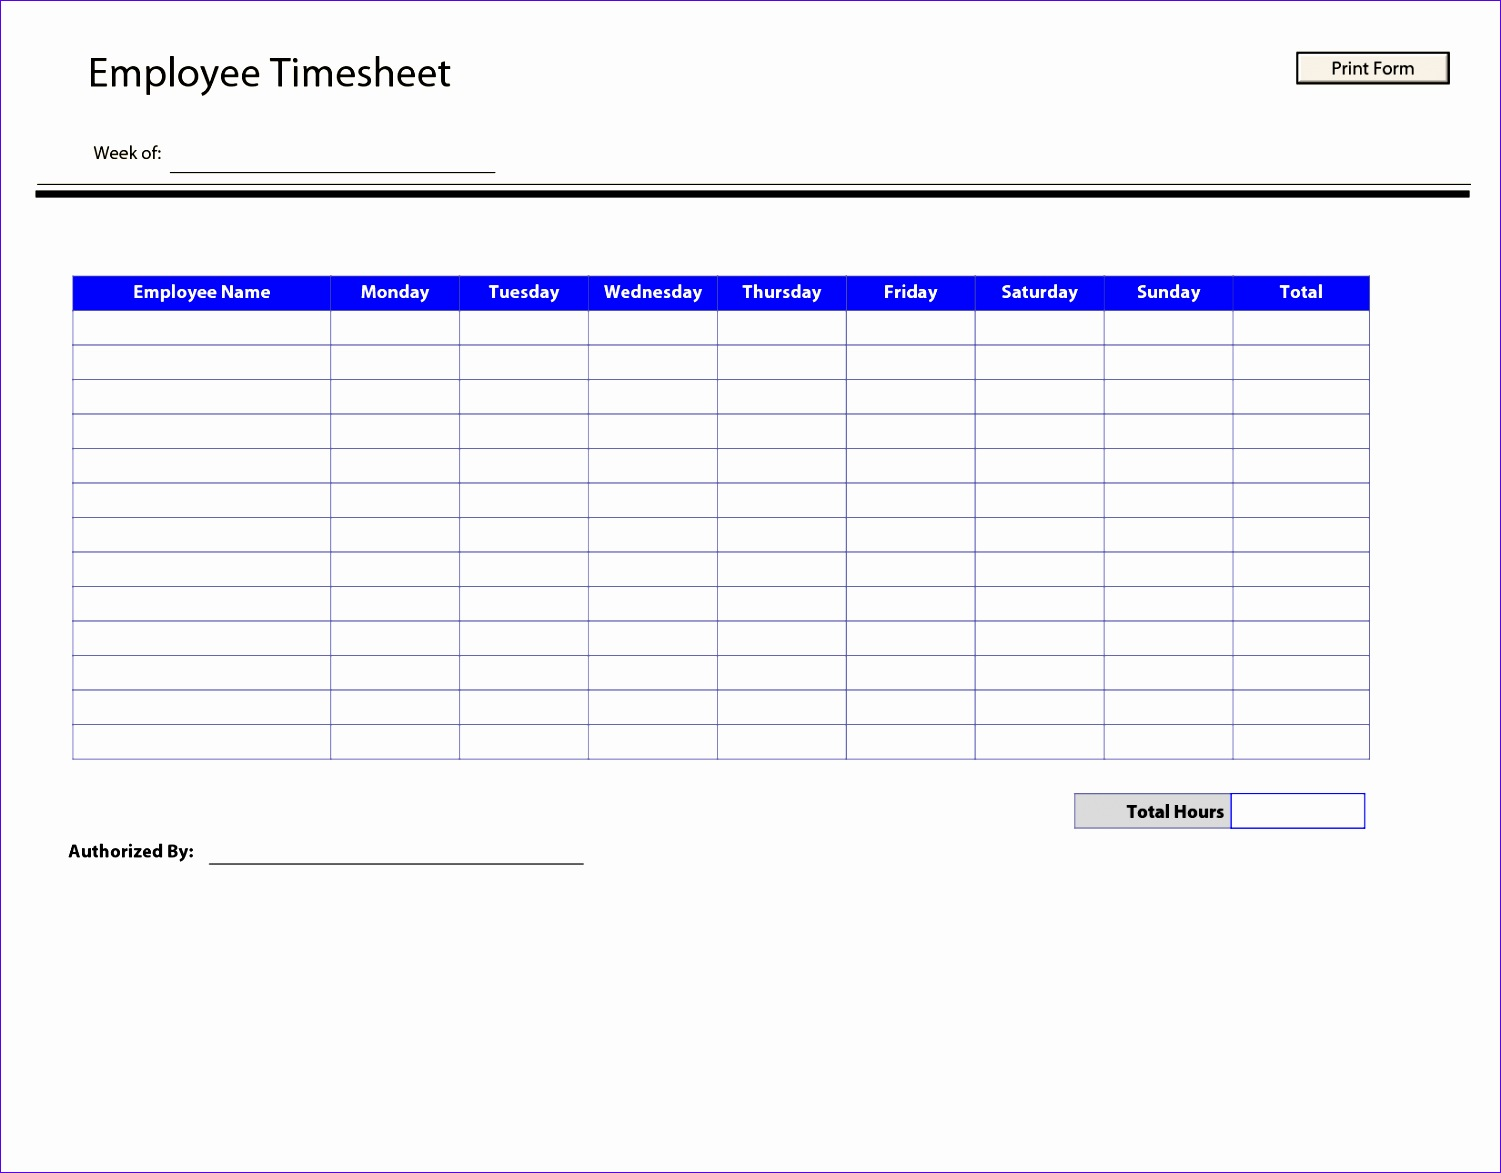 Excel Survey Results Template H3sul Inspirational Blank Employee Timesheet Template